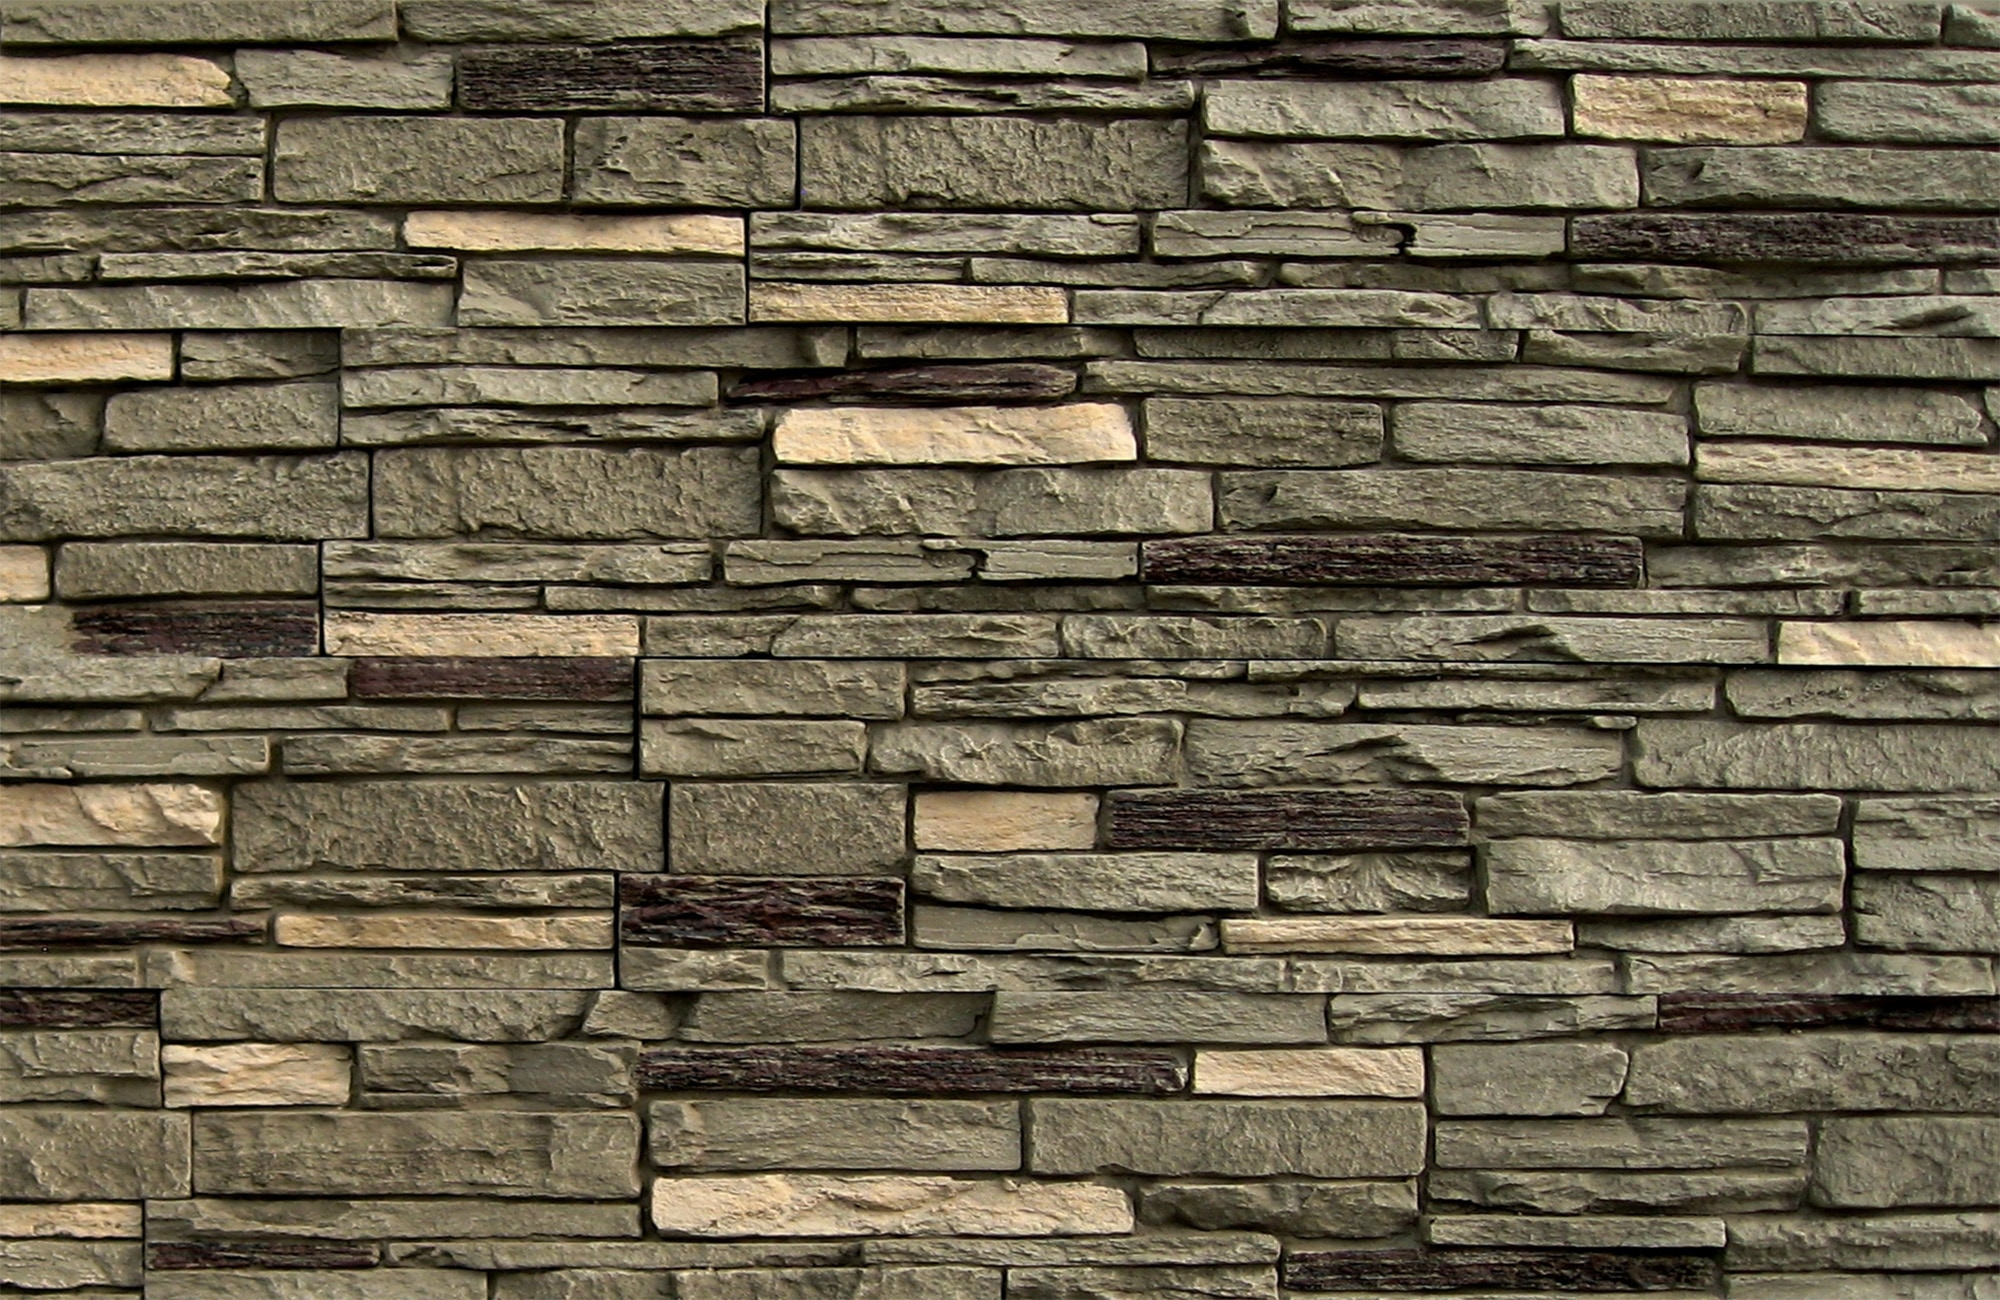 Fake Rocks Home Depot | Fake Stone Siding | Faux Brick Panels Lowes